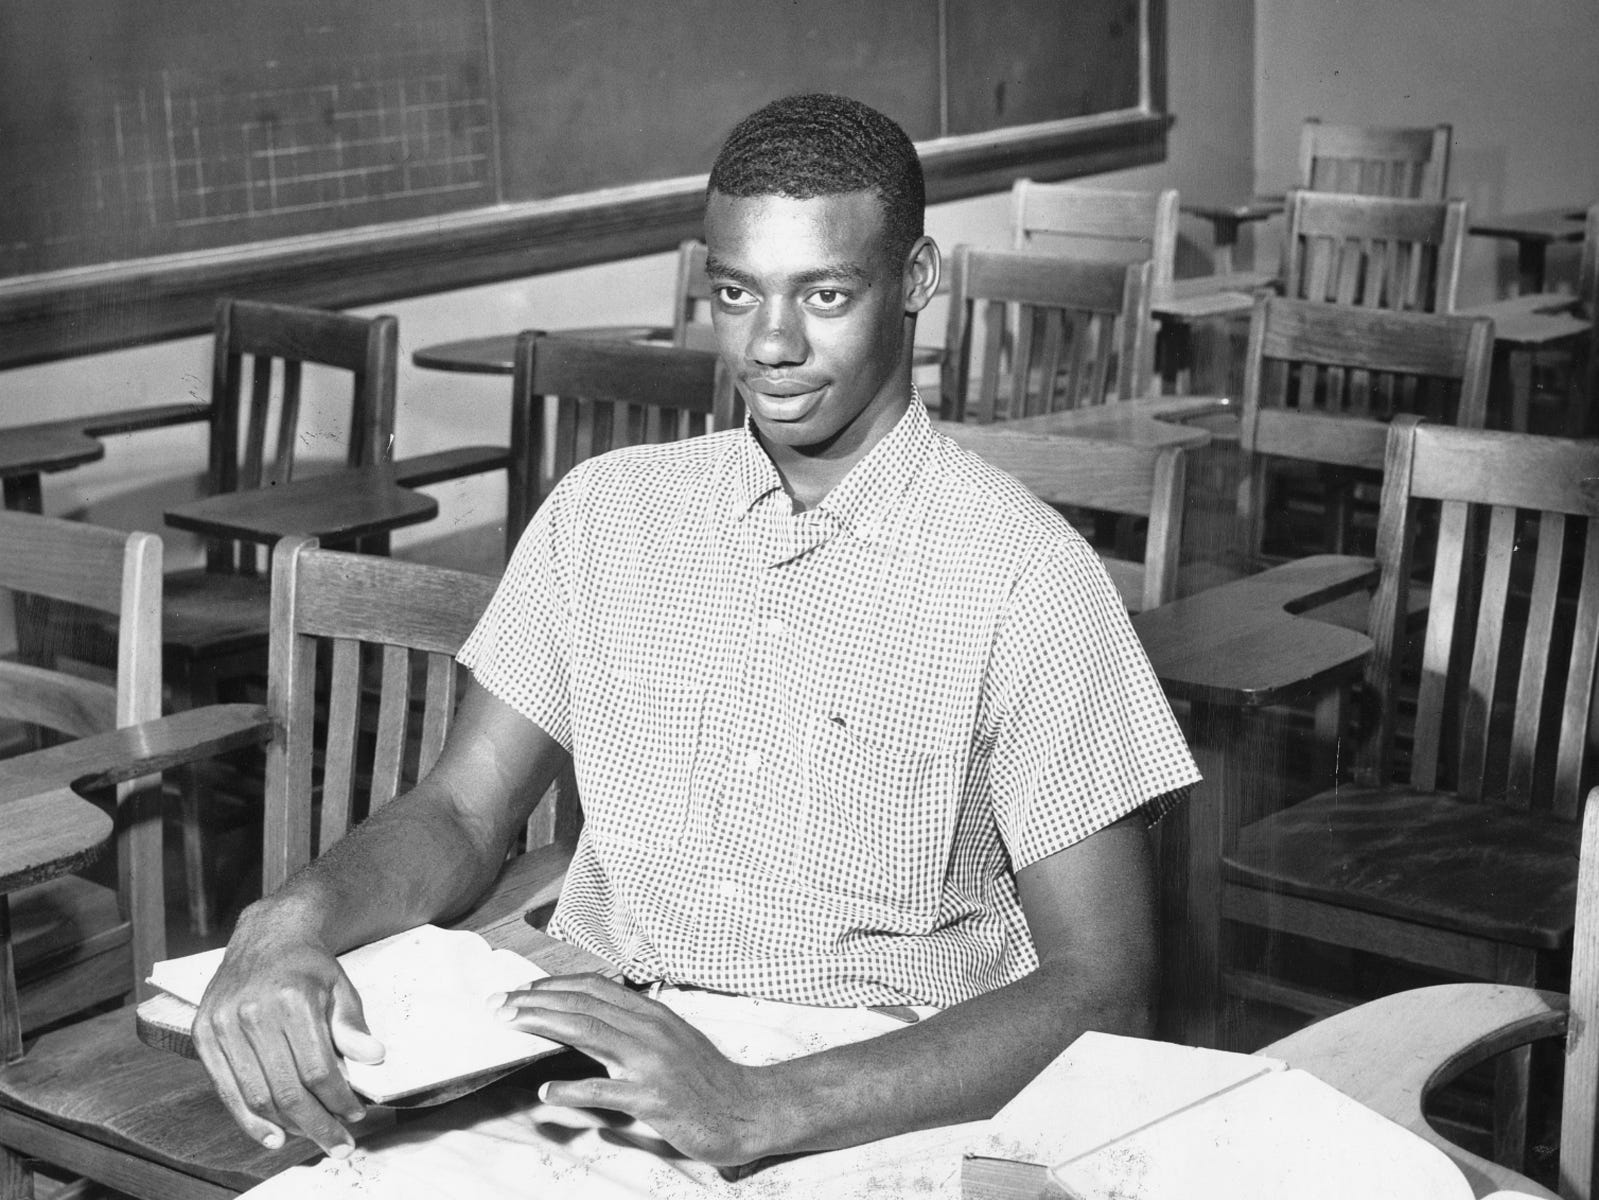 An outstanding career in the National Basketball Association was in the future of Indianapolis' Oscar Robertson, shown in a classroom at Crispus Attucks High School, on Aug. 13, 1958.